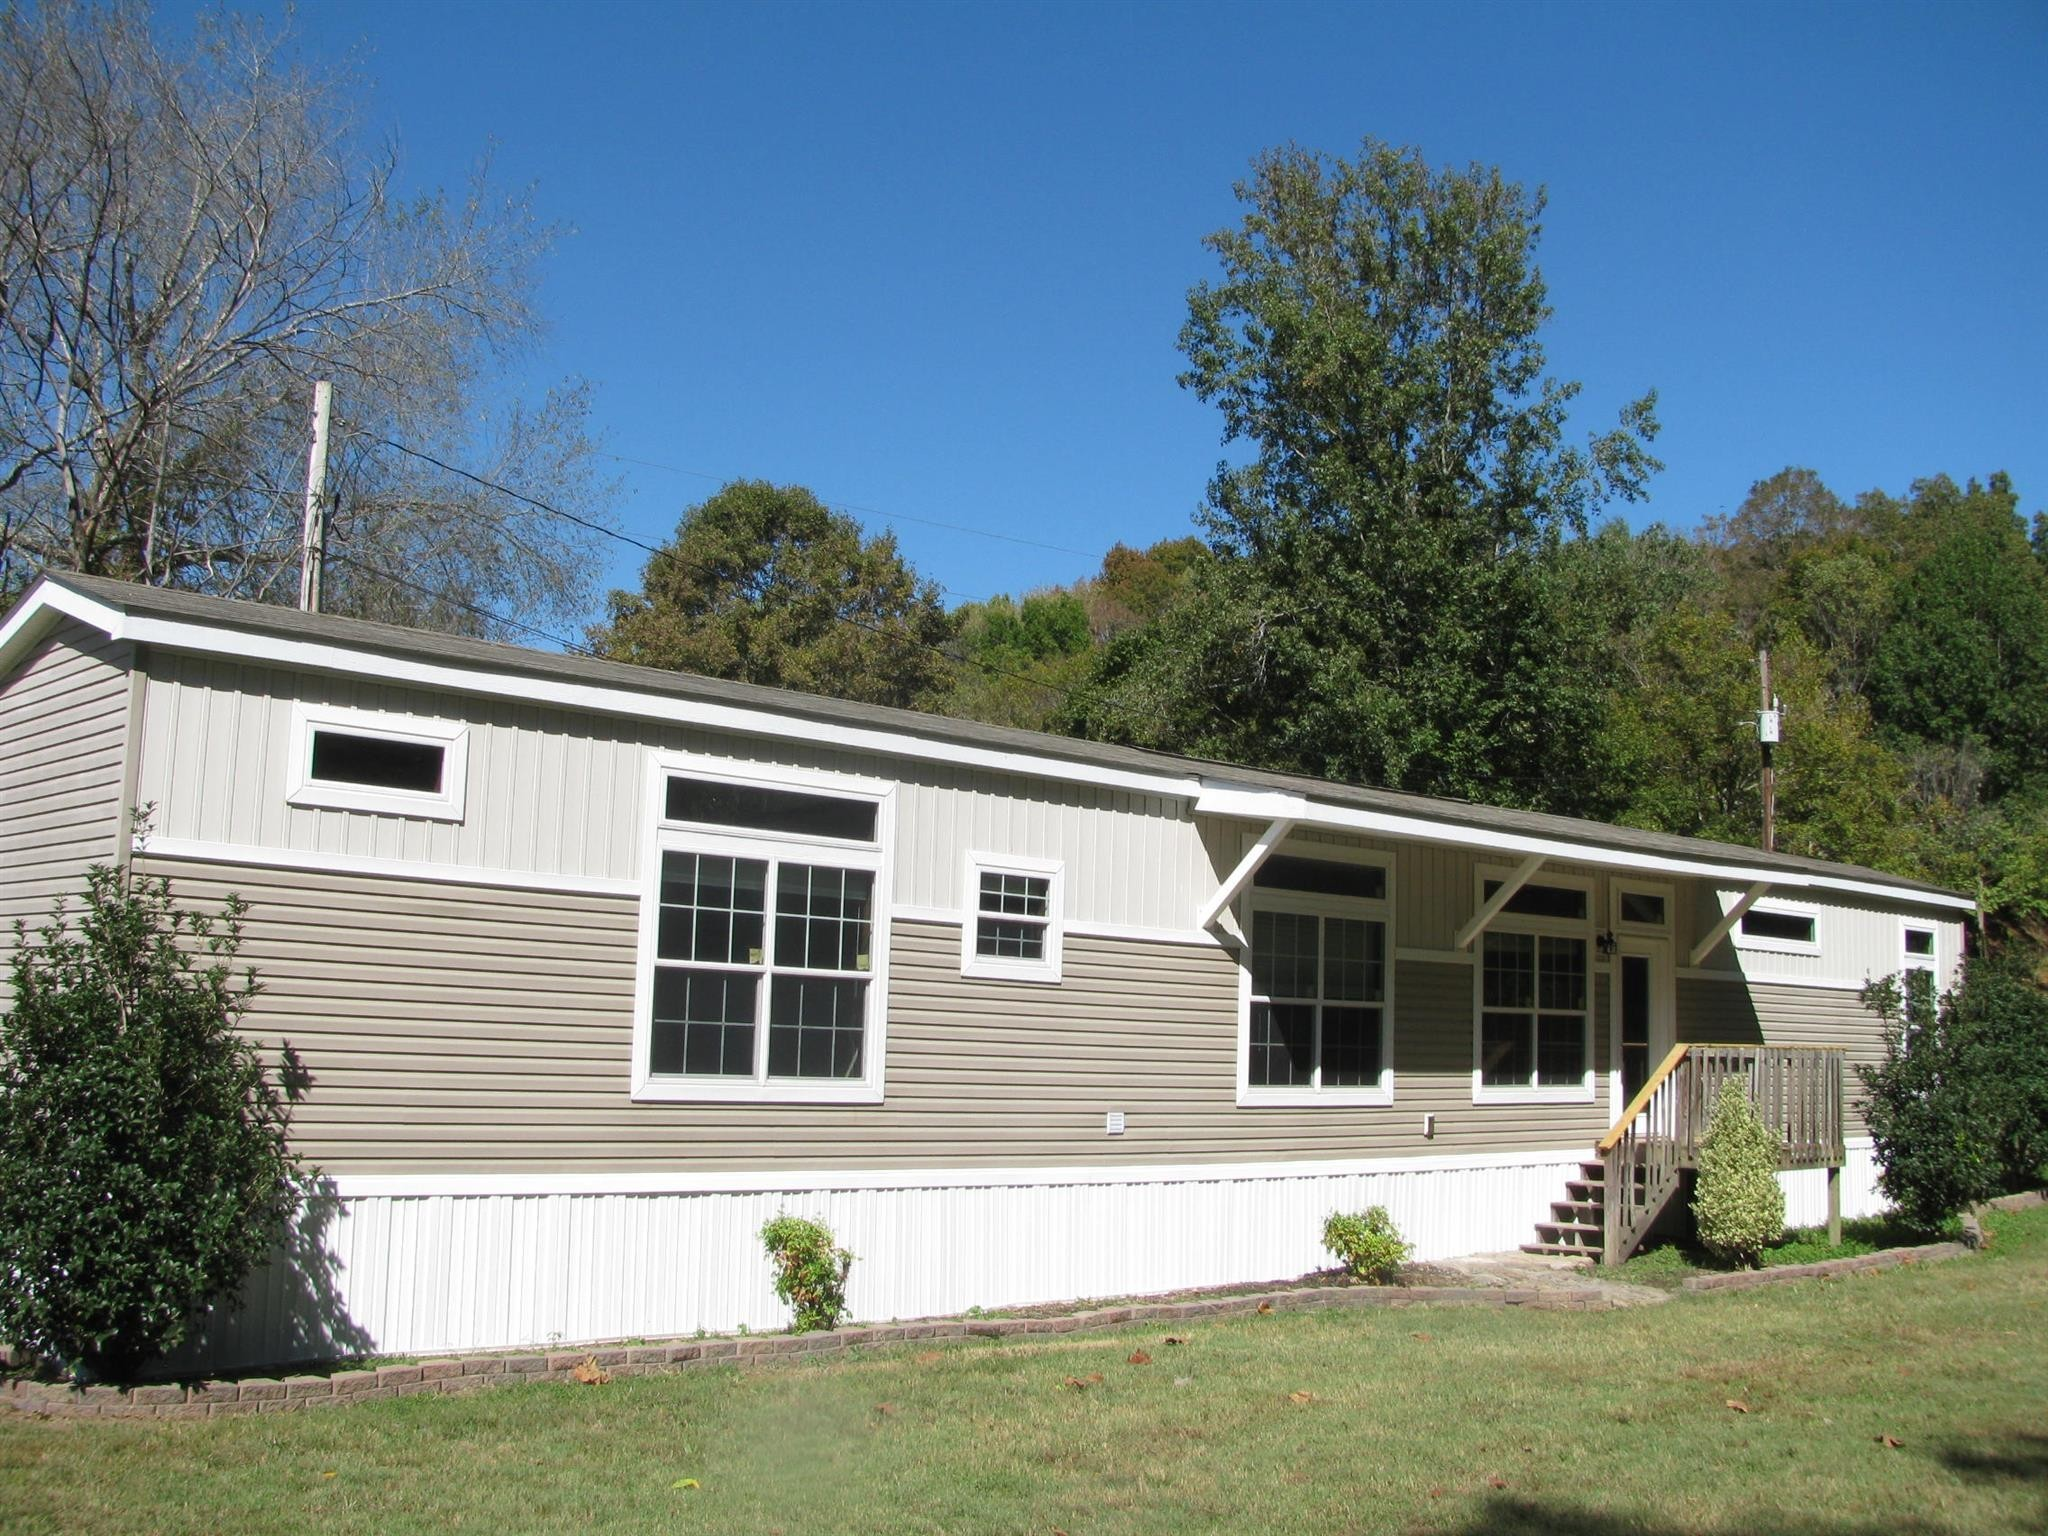 89 Gus Norfleet Ln Property Photo - Erin, TN real estate listing